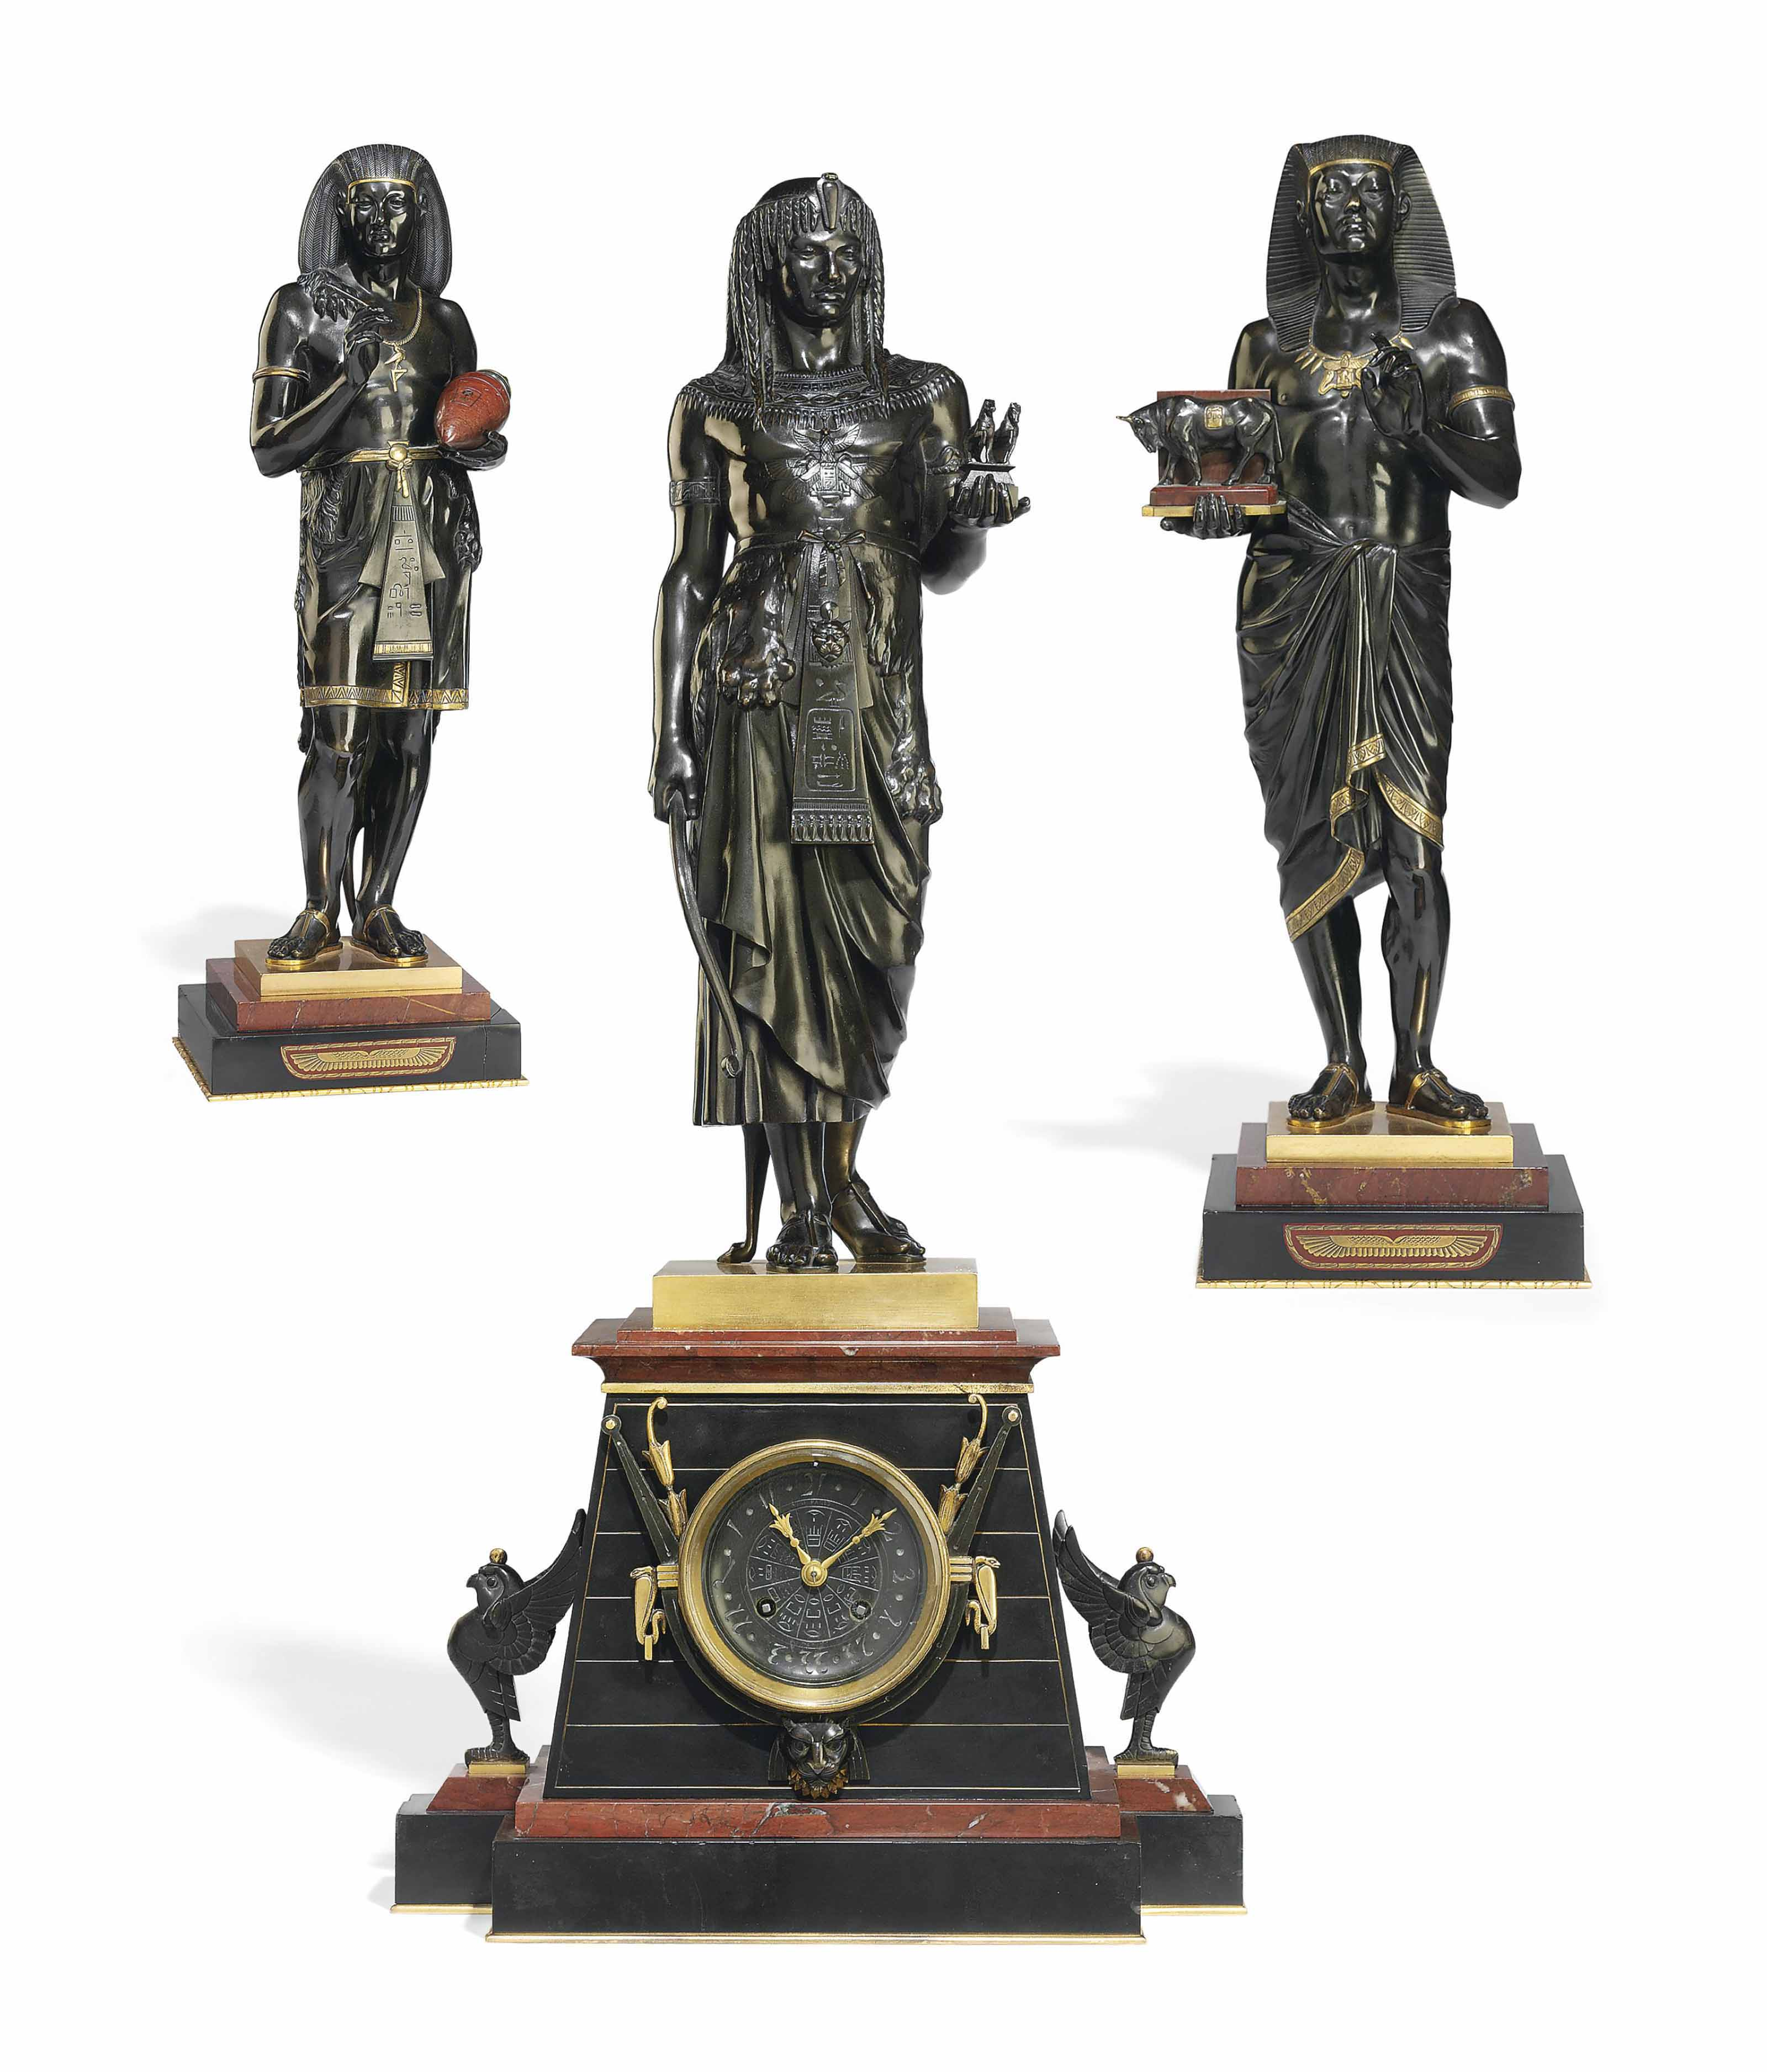 A FRENCH PARCEL-GILT BRONZE, ROUGE AND BLACK MARBLE THREE-PIECE FIGURAL CLOCK GARNITURE